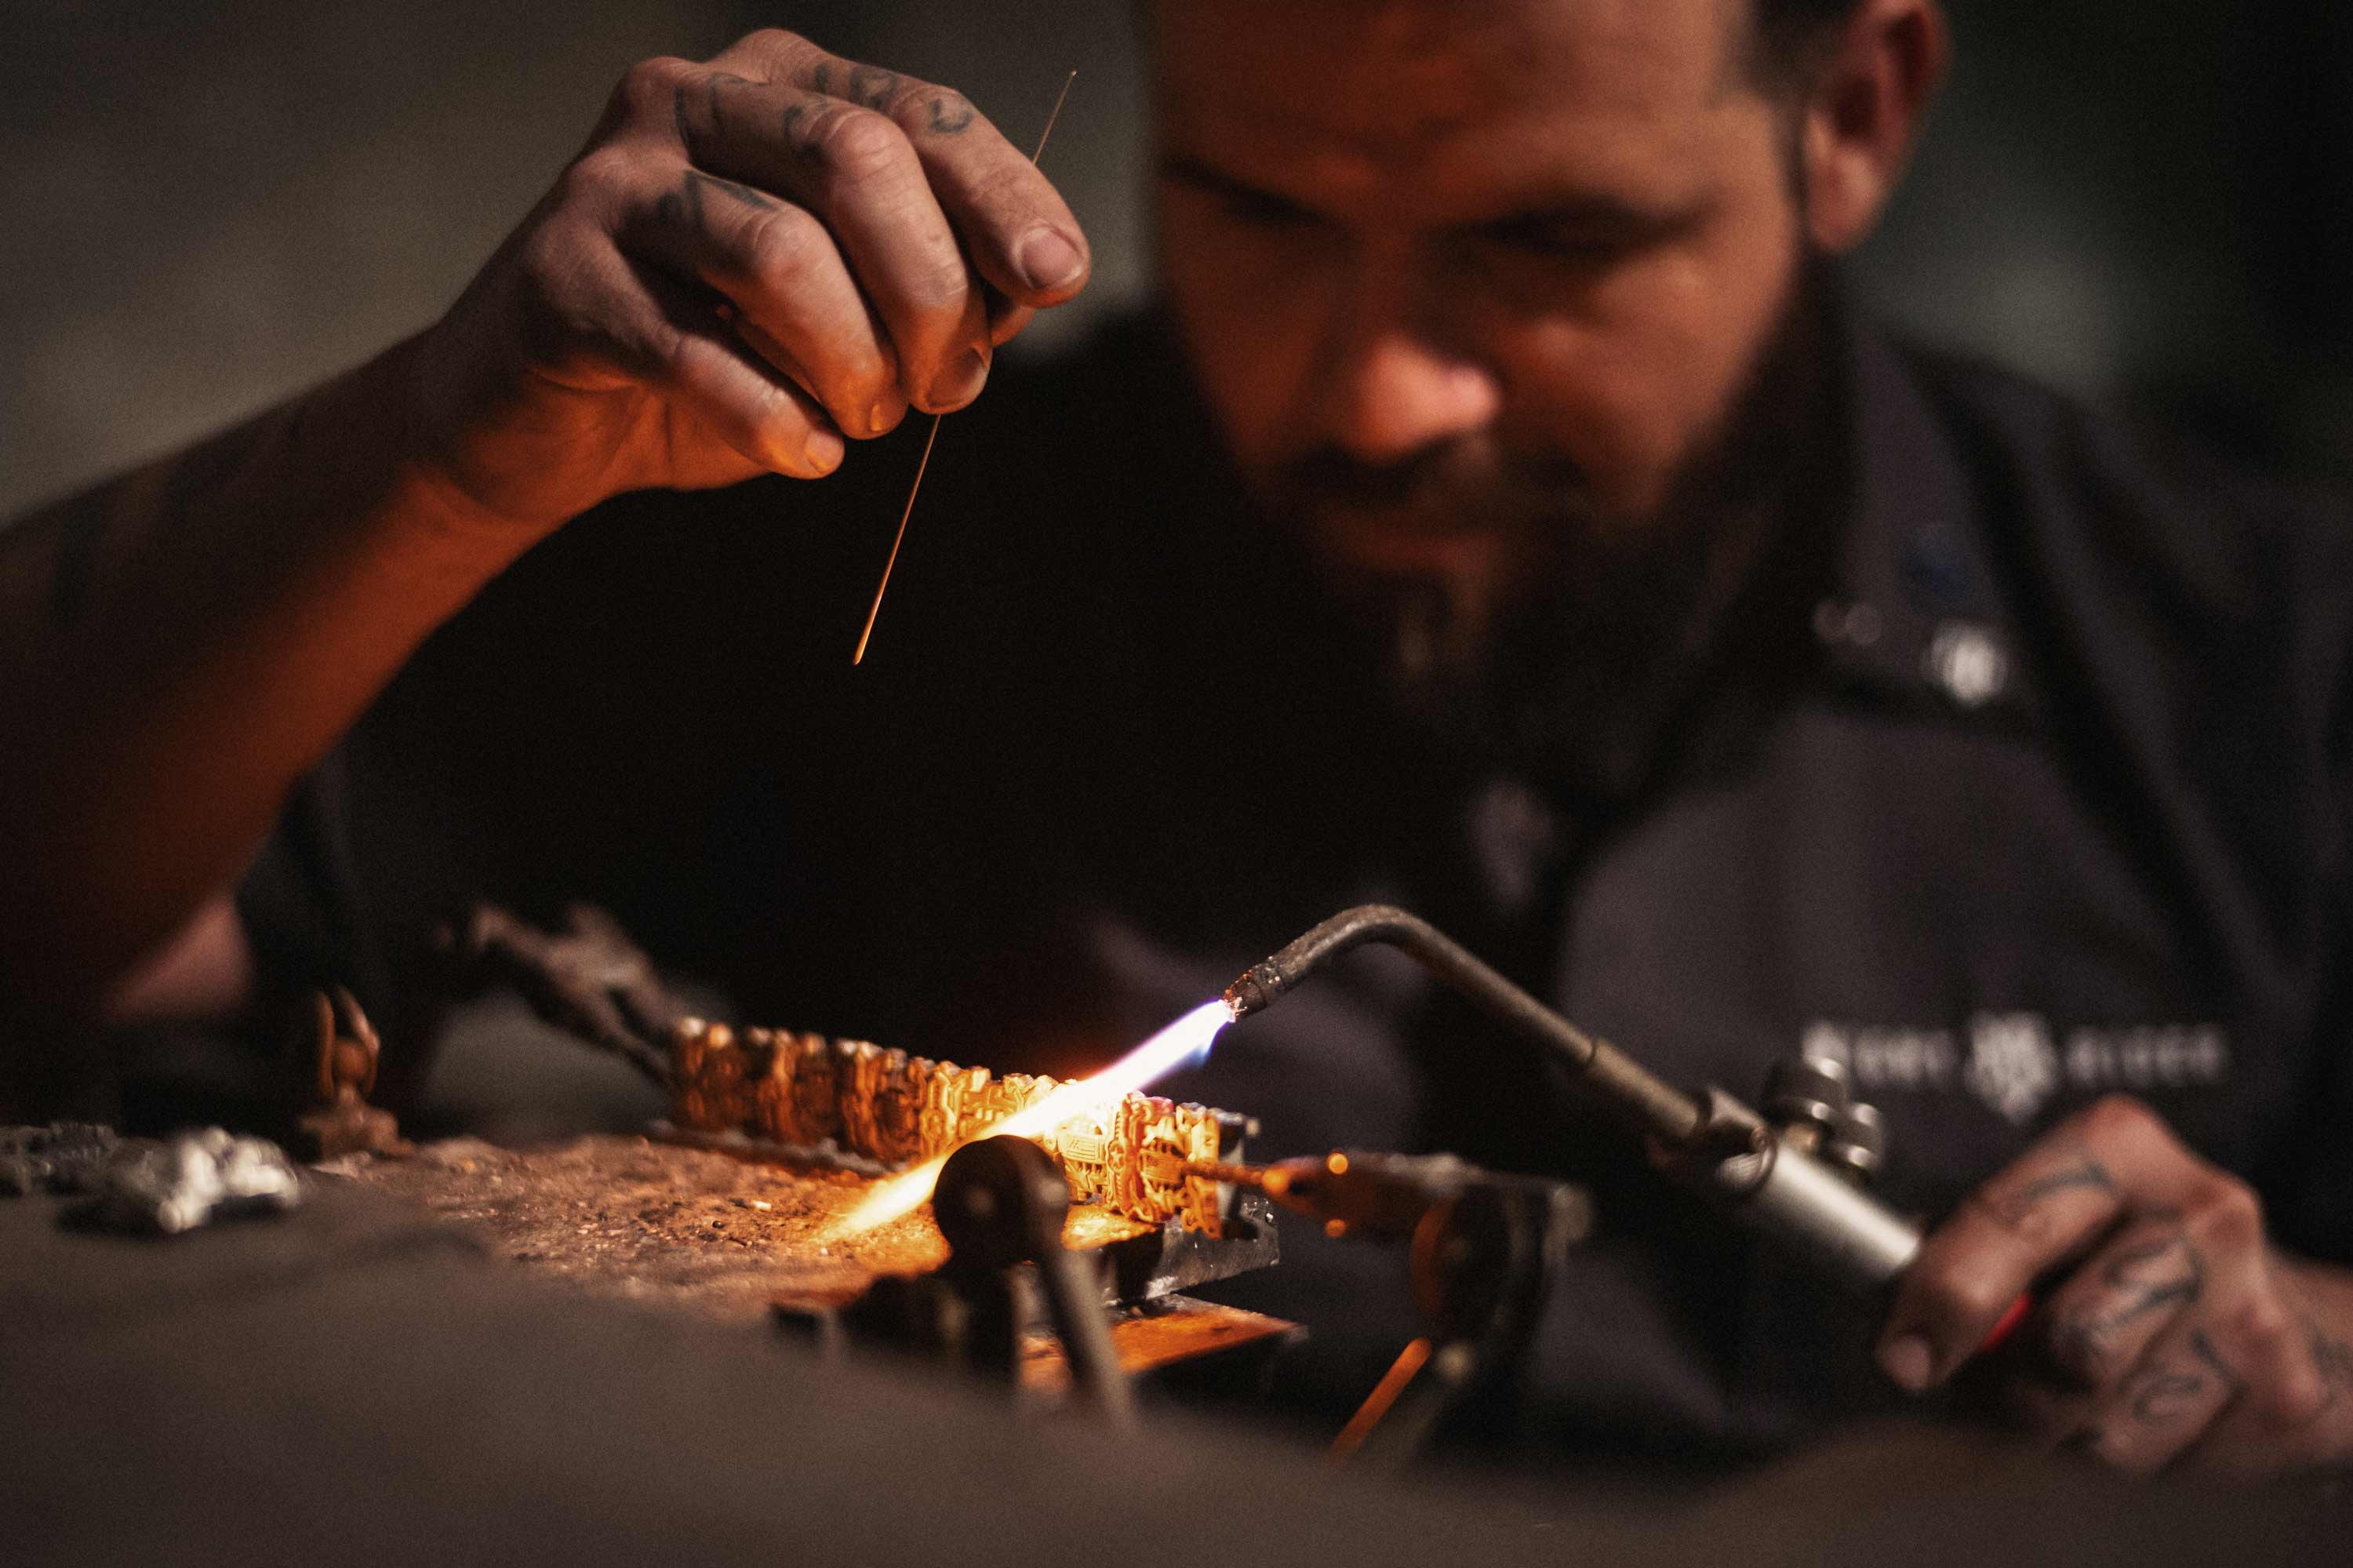 A bench jeweler uses a torch to weld a bracelet